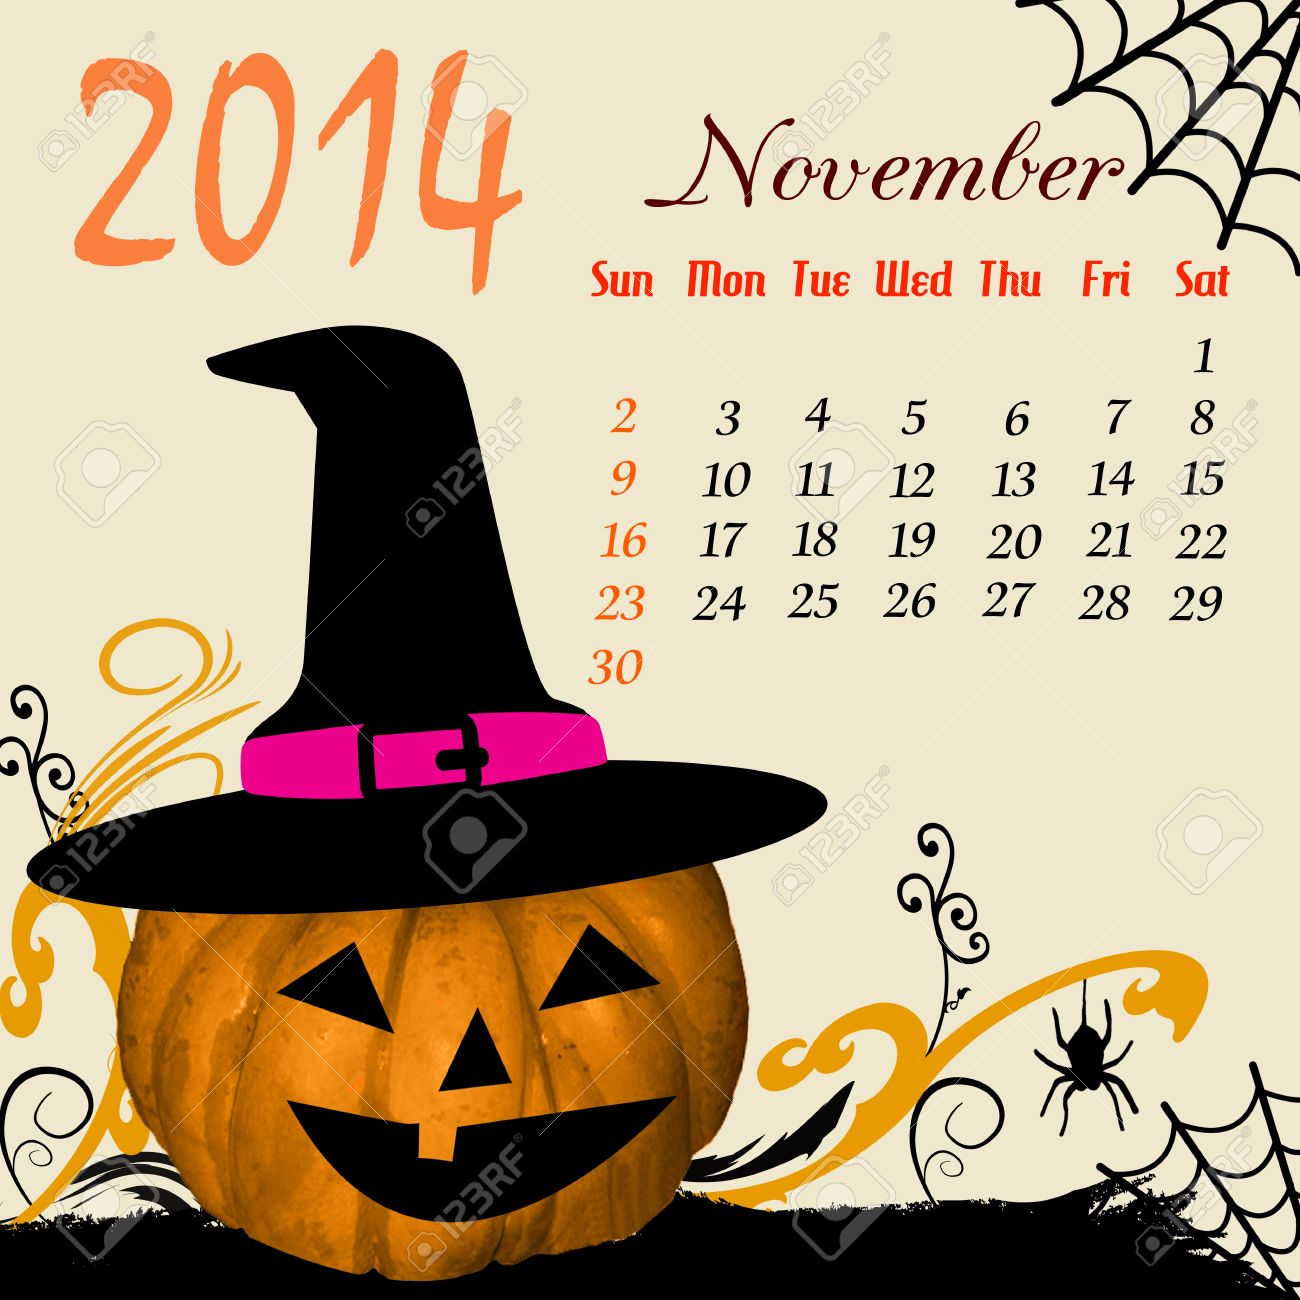 Clipart calendar november 2014 png freeuse Calendar For 2014 November With Halloween Elements Royalty Free ... png freeuse